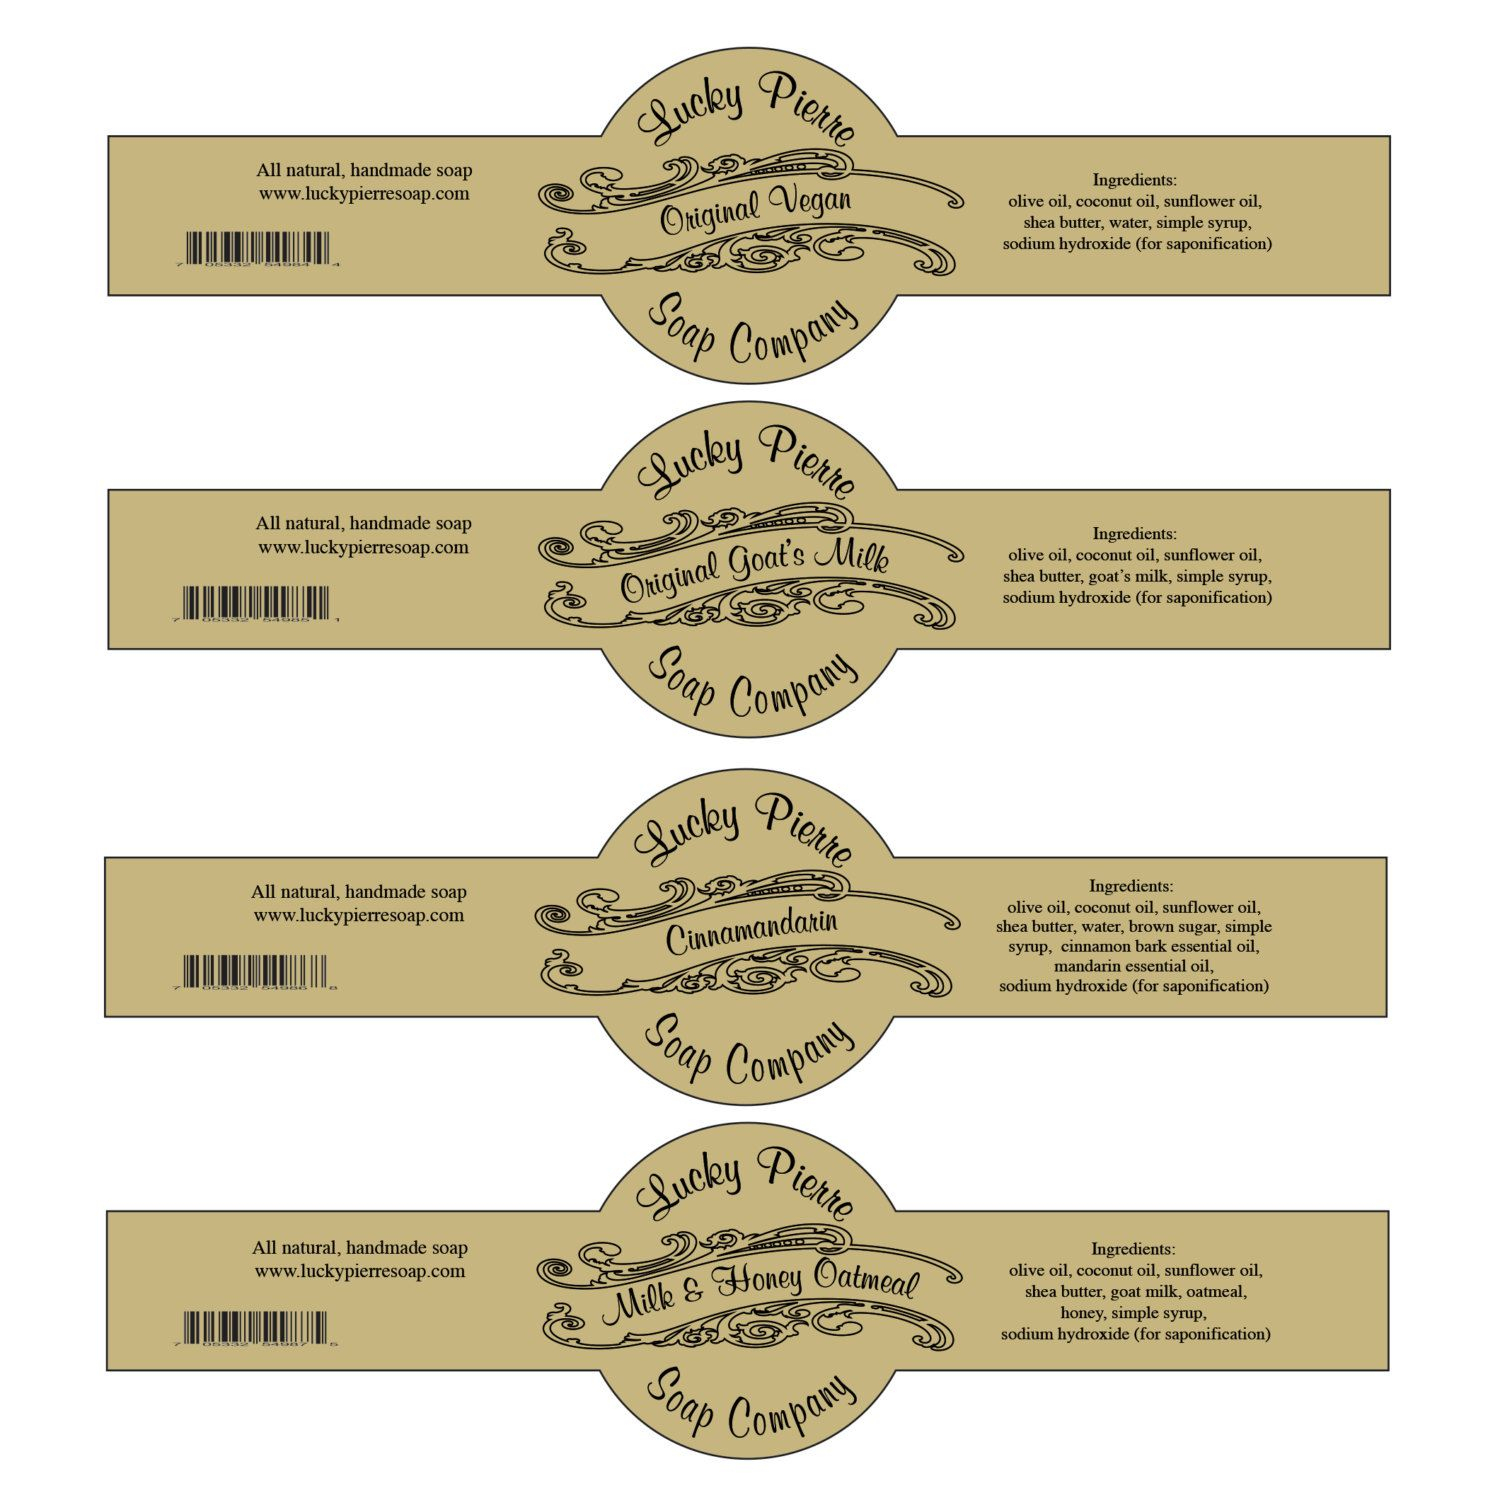 Pinsonja Wiese On Aromatherapy Recipes | Soap Labels, Diy Soap - Free Printable Cigar Label Template